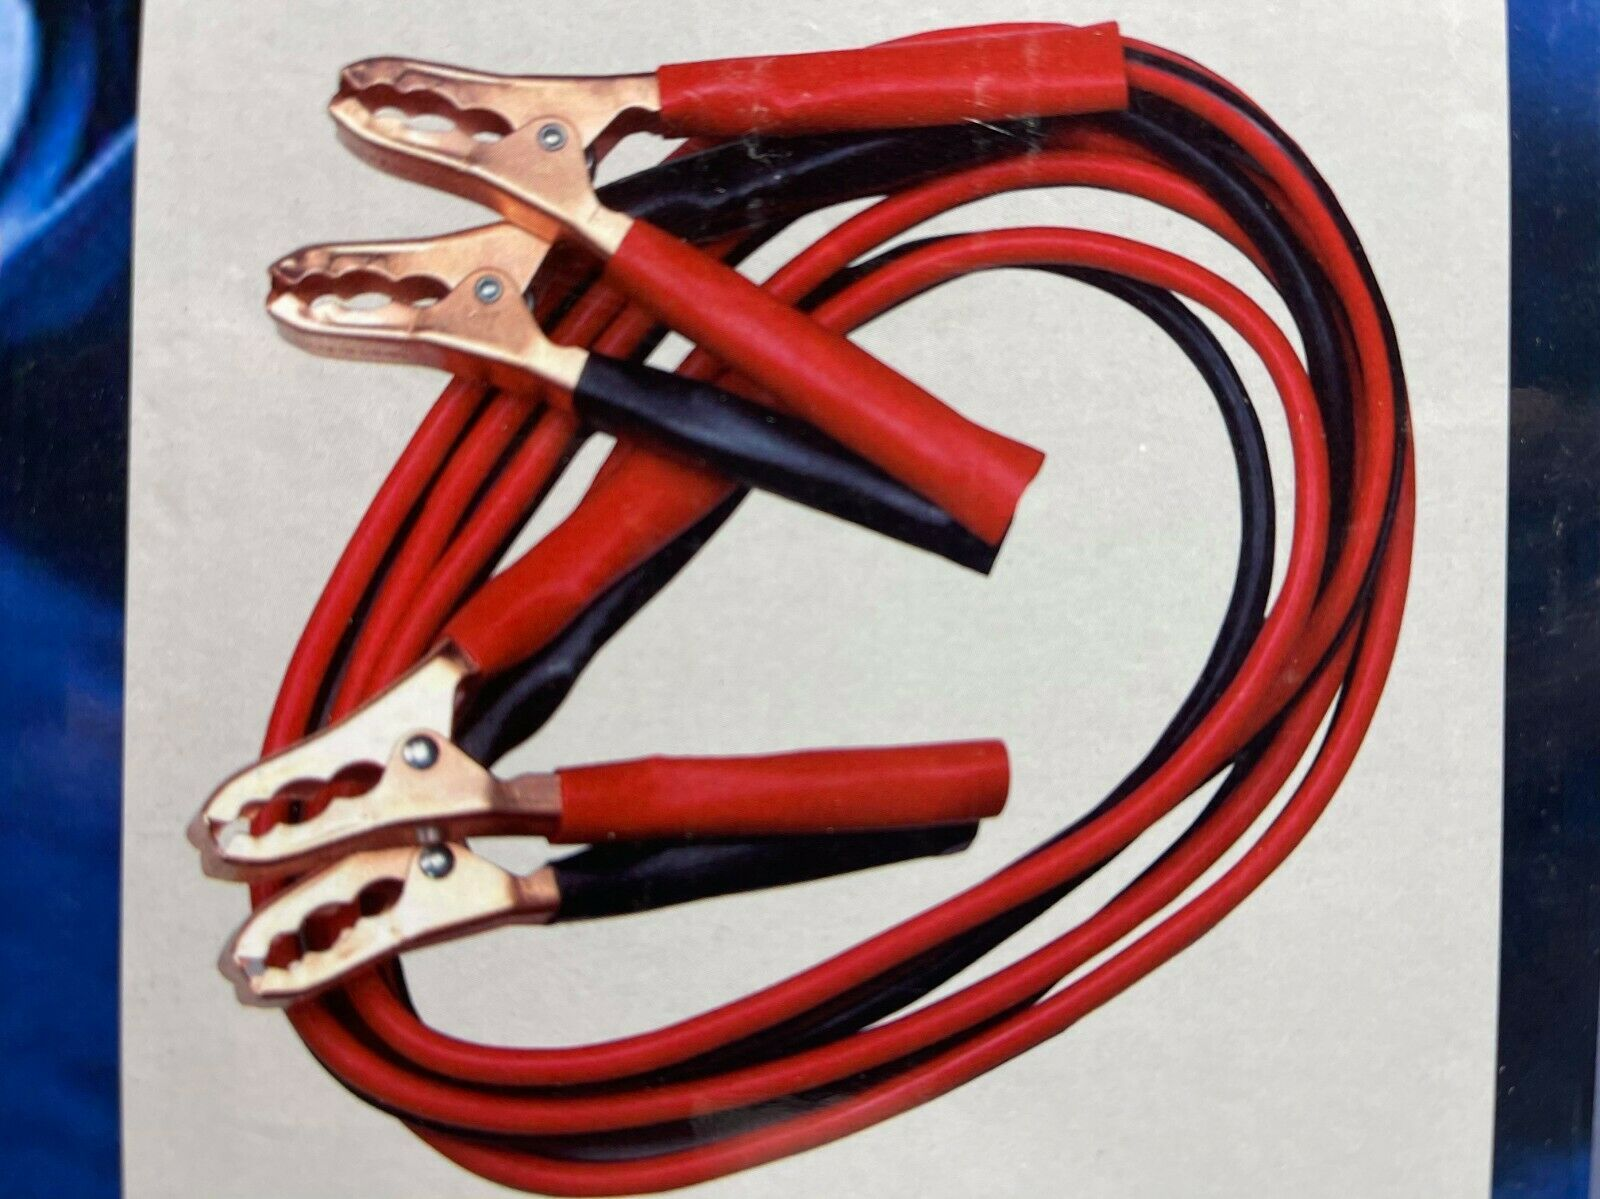 Booster Cables 10 Gauge 12 Feet By Helping Hand - New In Box